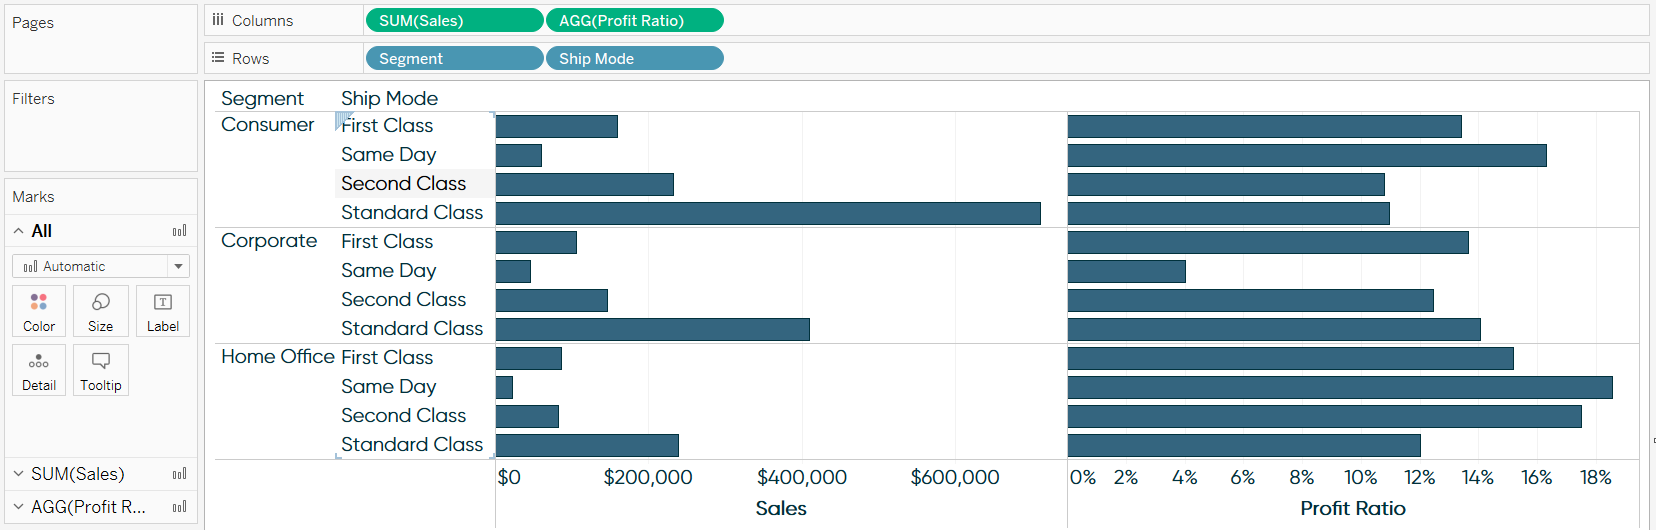 Tableau Sales and Profit Ratio by Segment and Ship Mode Dimension No Tooltip